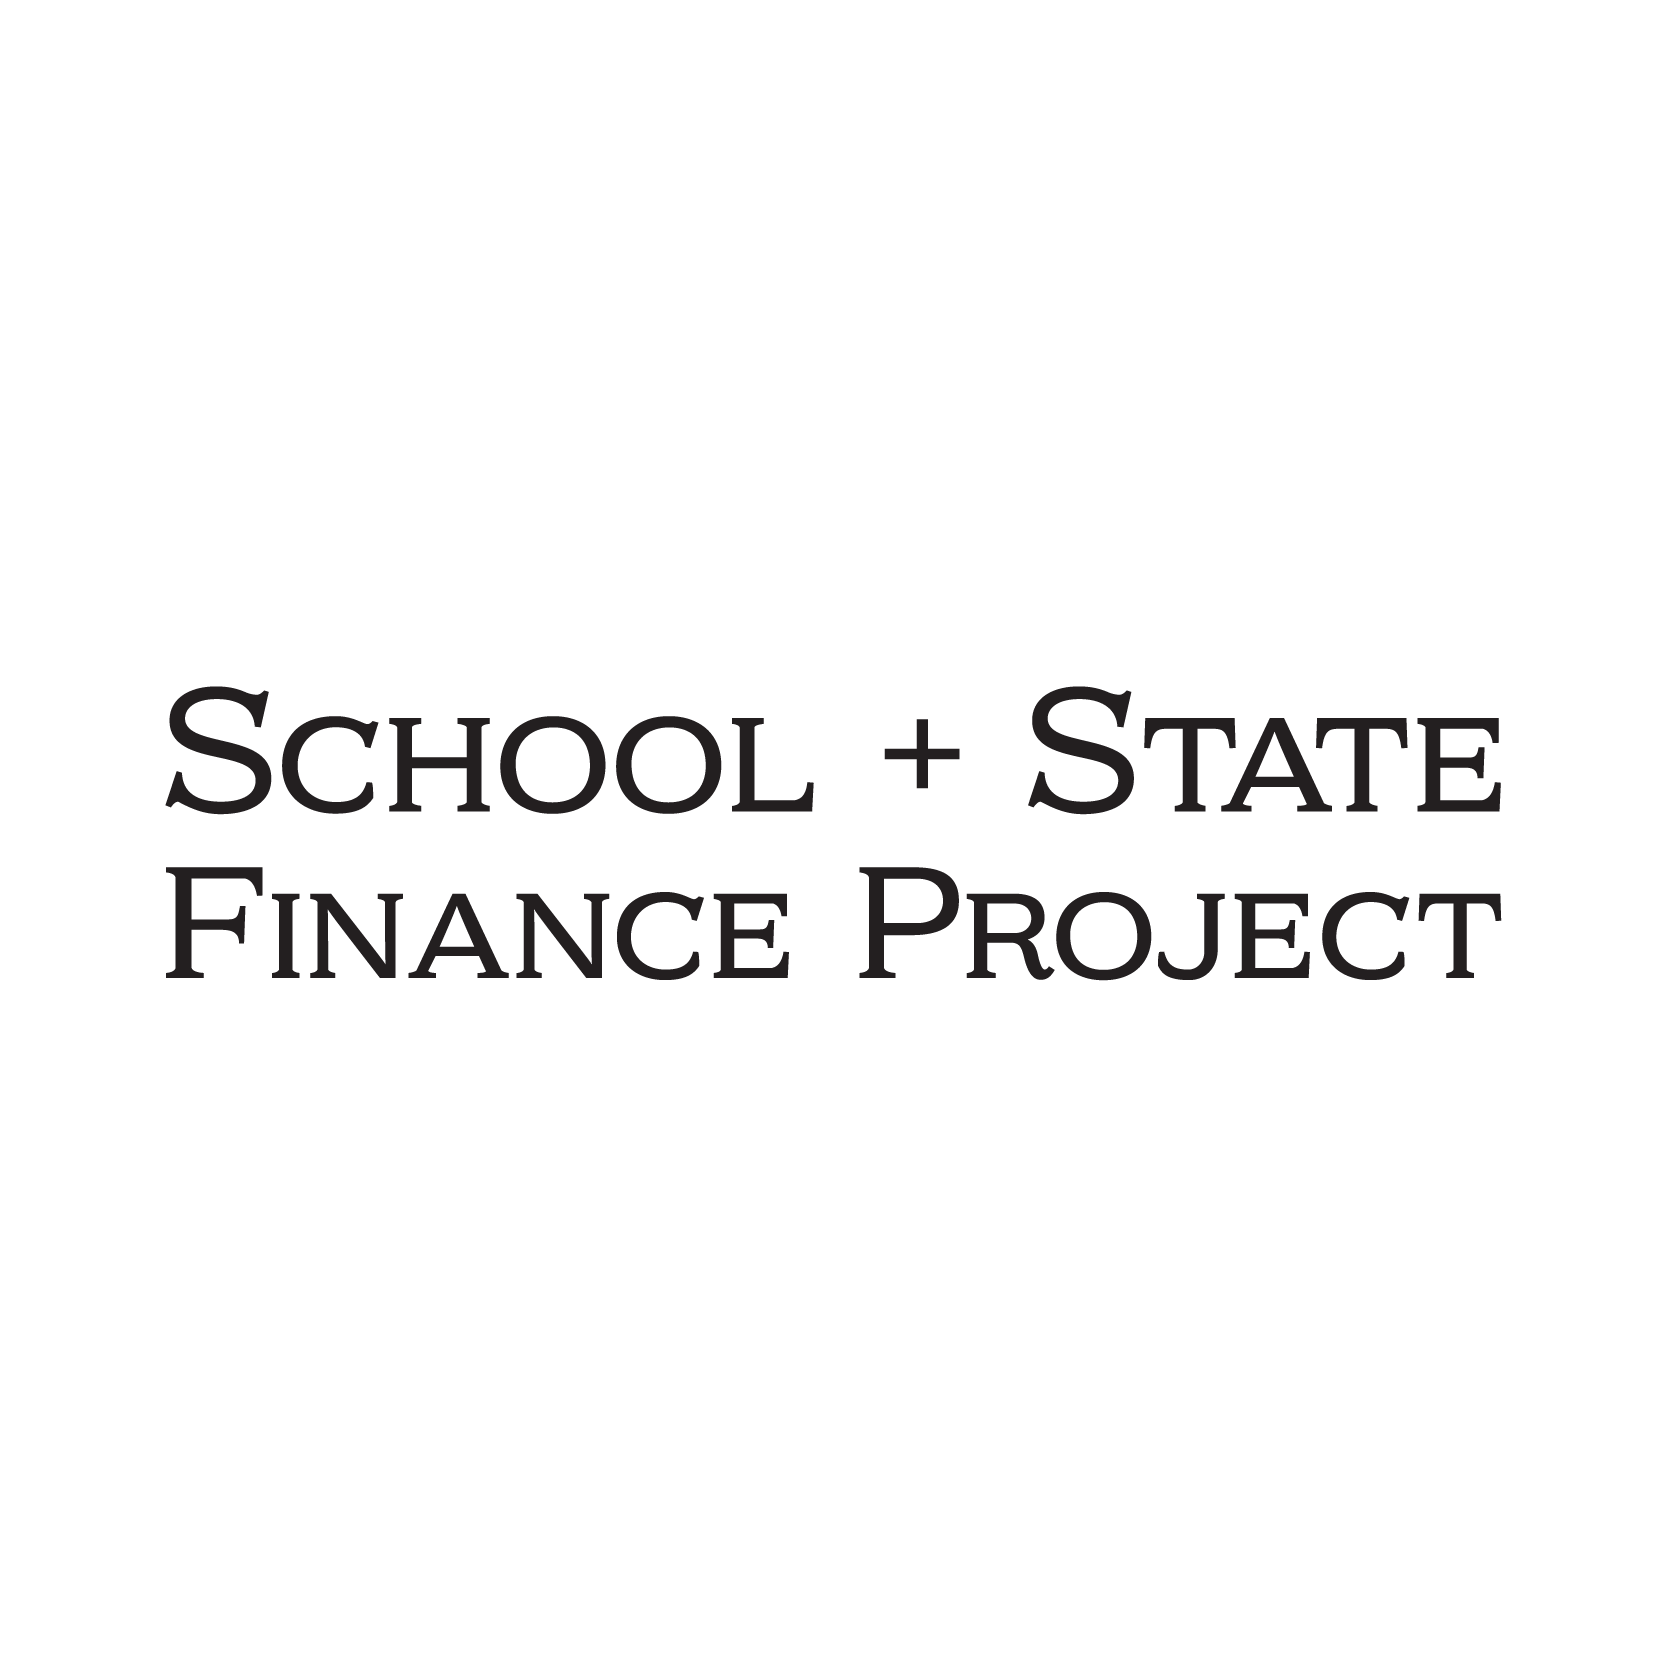 School + State Finance Project Client Logo